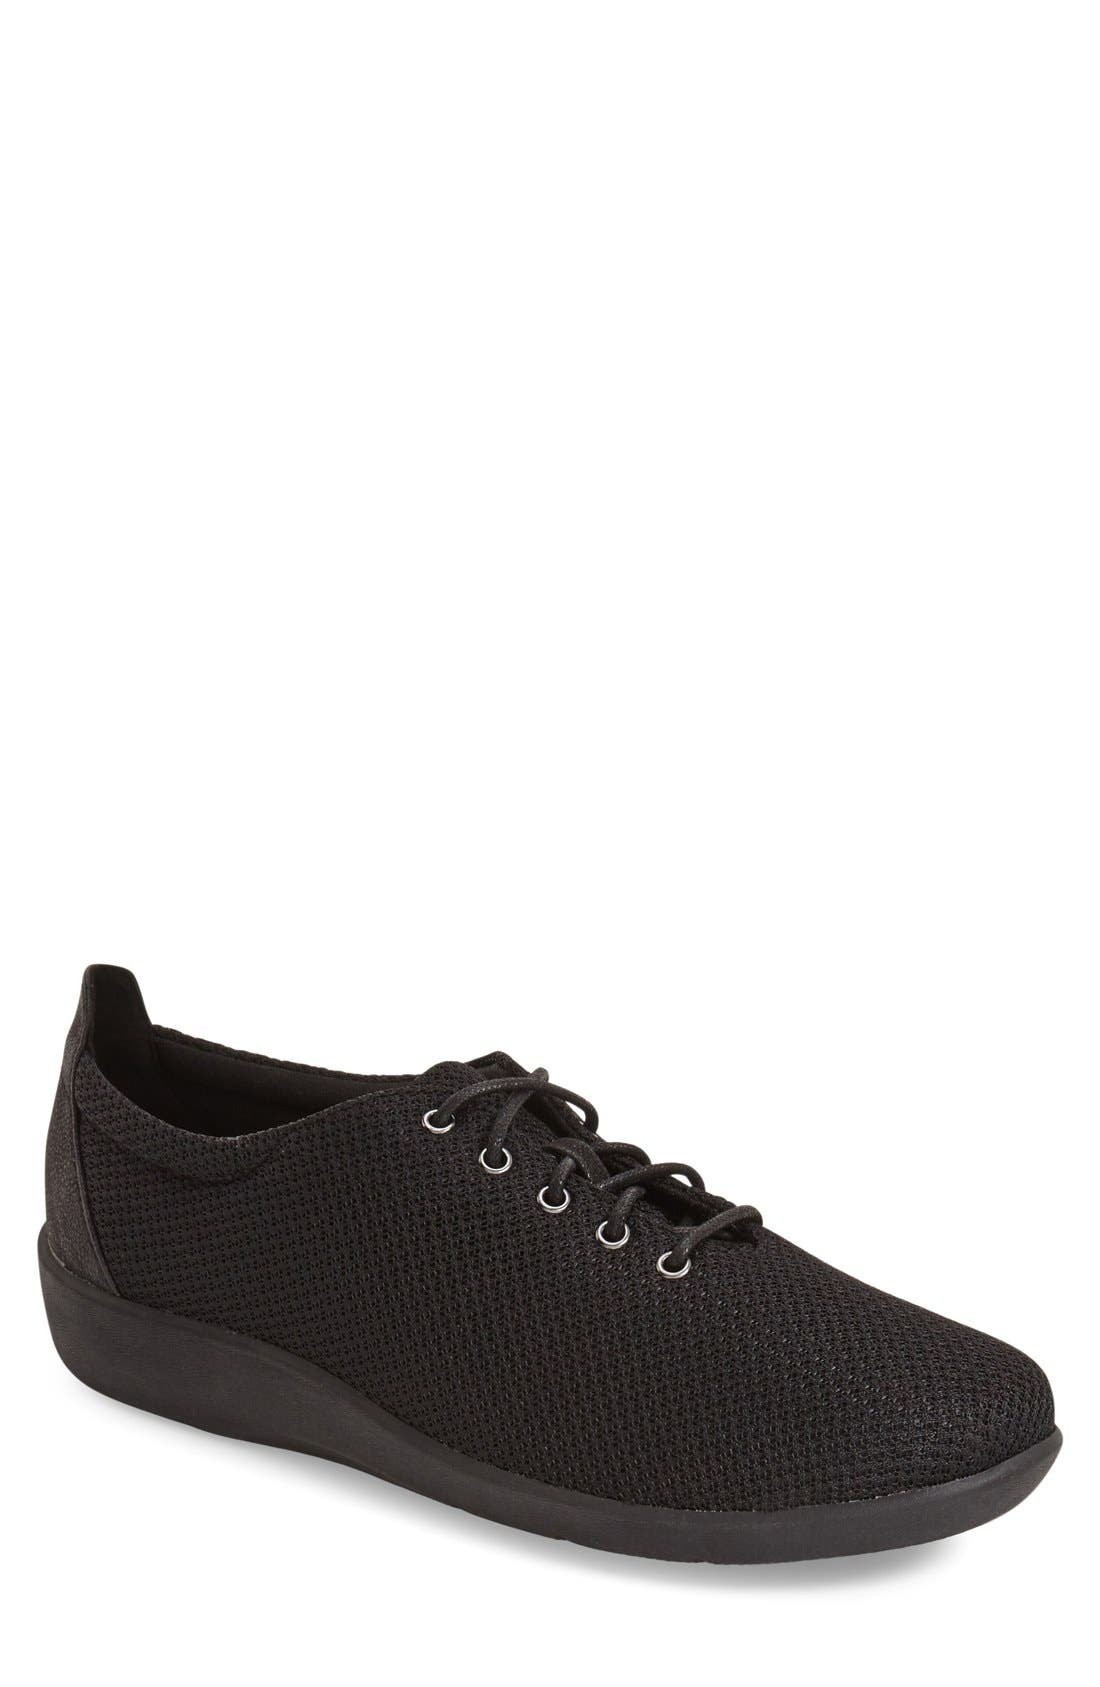 Clarks<sup>®</sup> 'Sillian - Tino' Sneaker,                             Main thumbnail 1, color,                             001